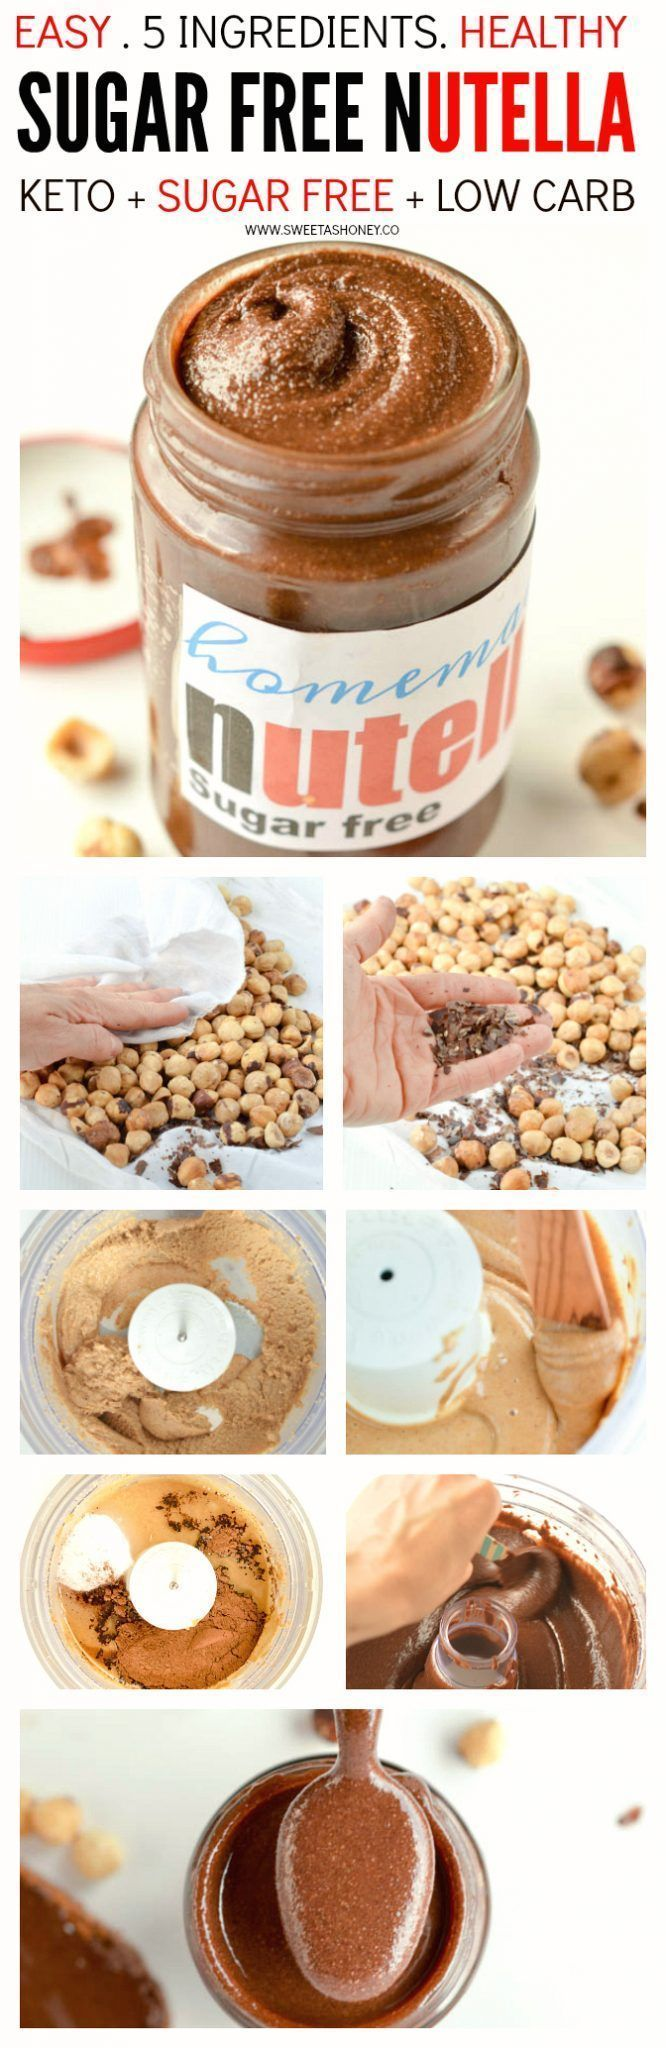 Homemade sugar free nutella.  For more pins like this, follow us @juicemetoo!